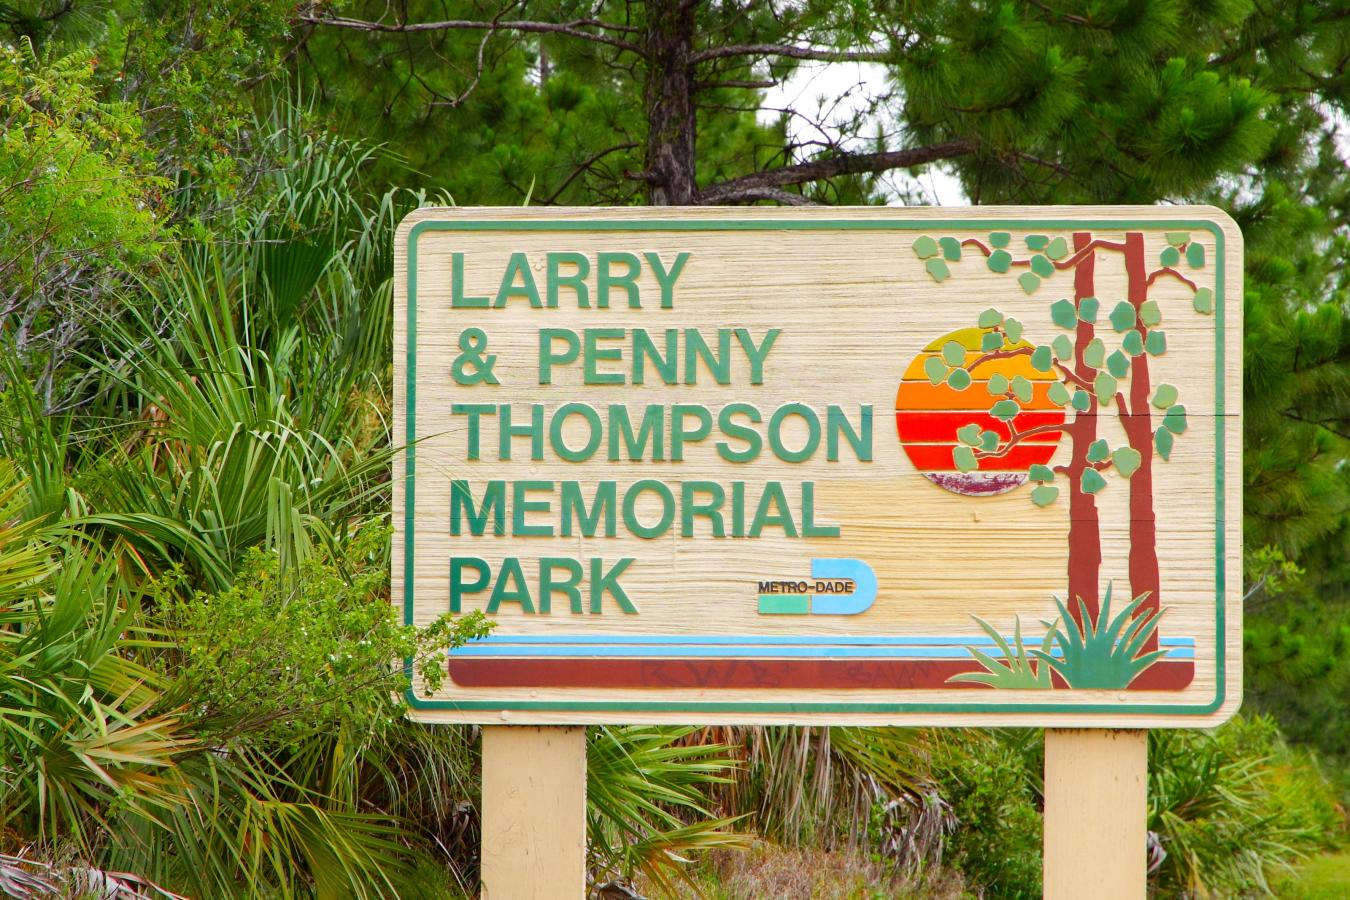 Larry & Penny Thompson Memorial Park